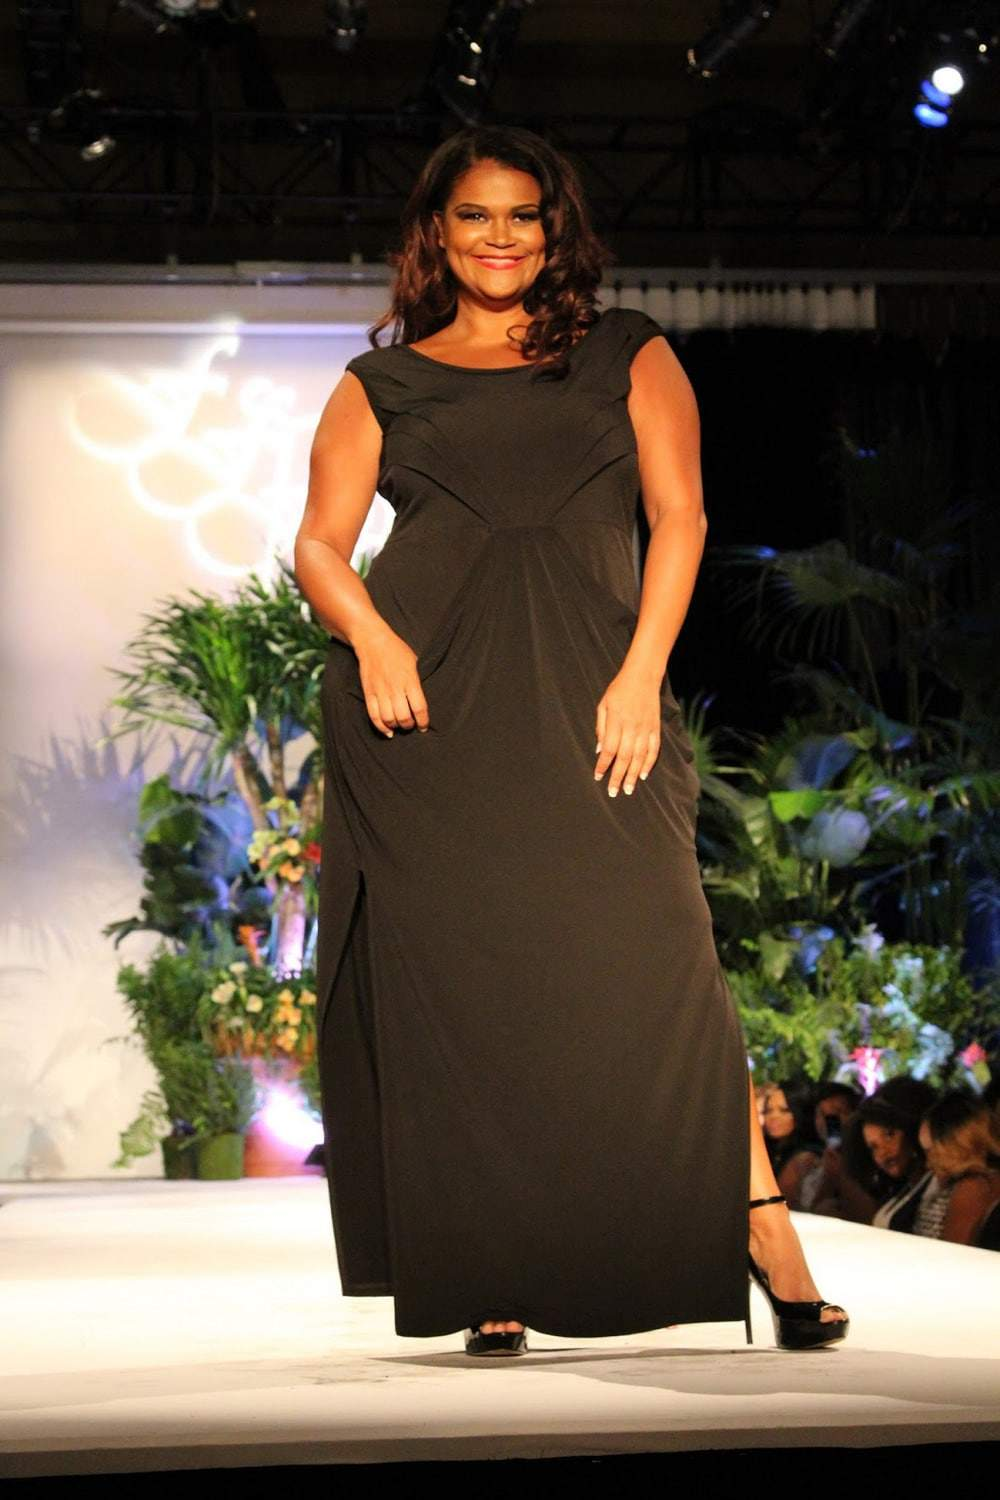 Misty Belvidere at Full Figured Fashion Week 2015